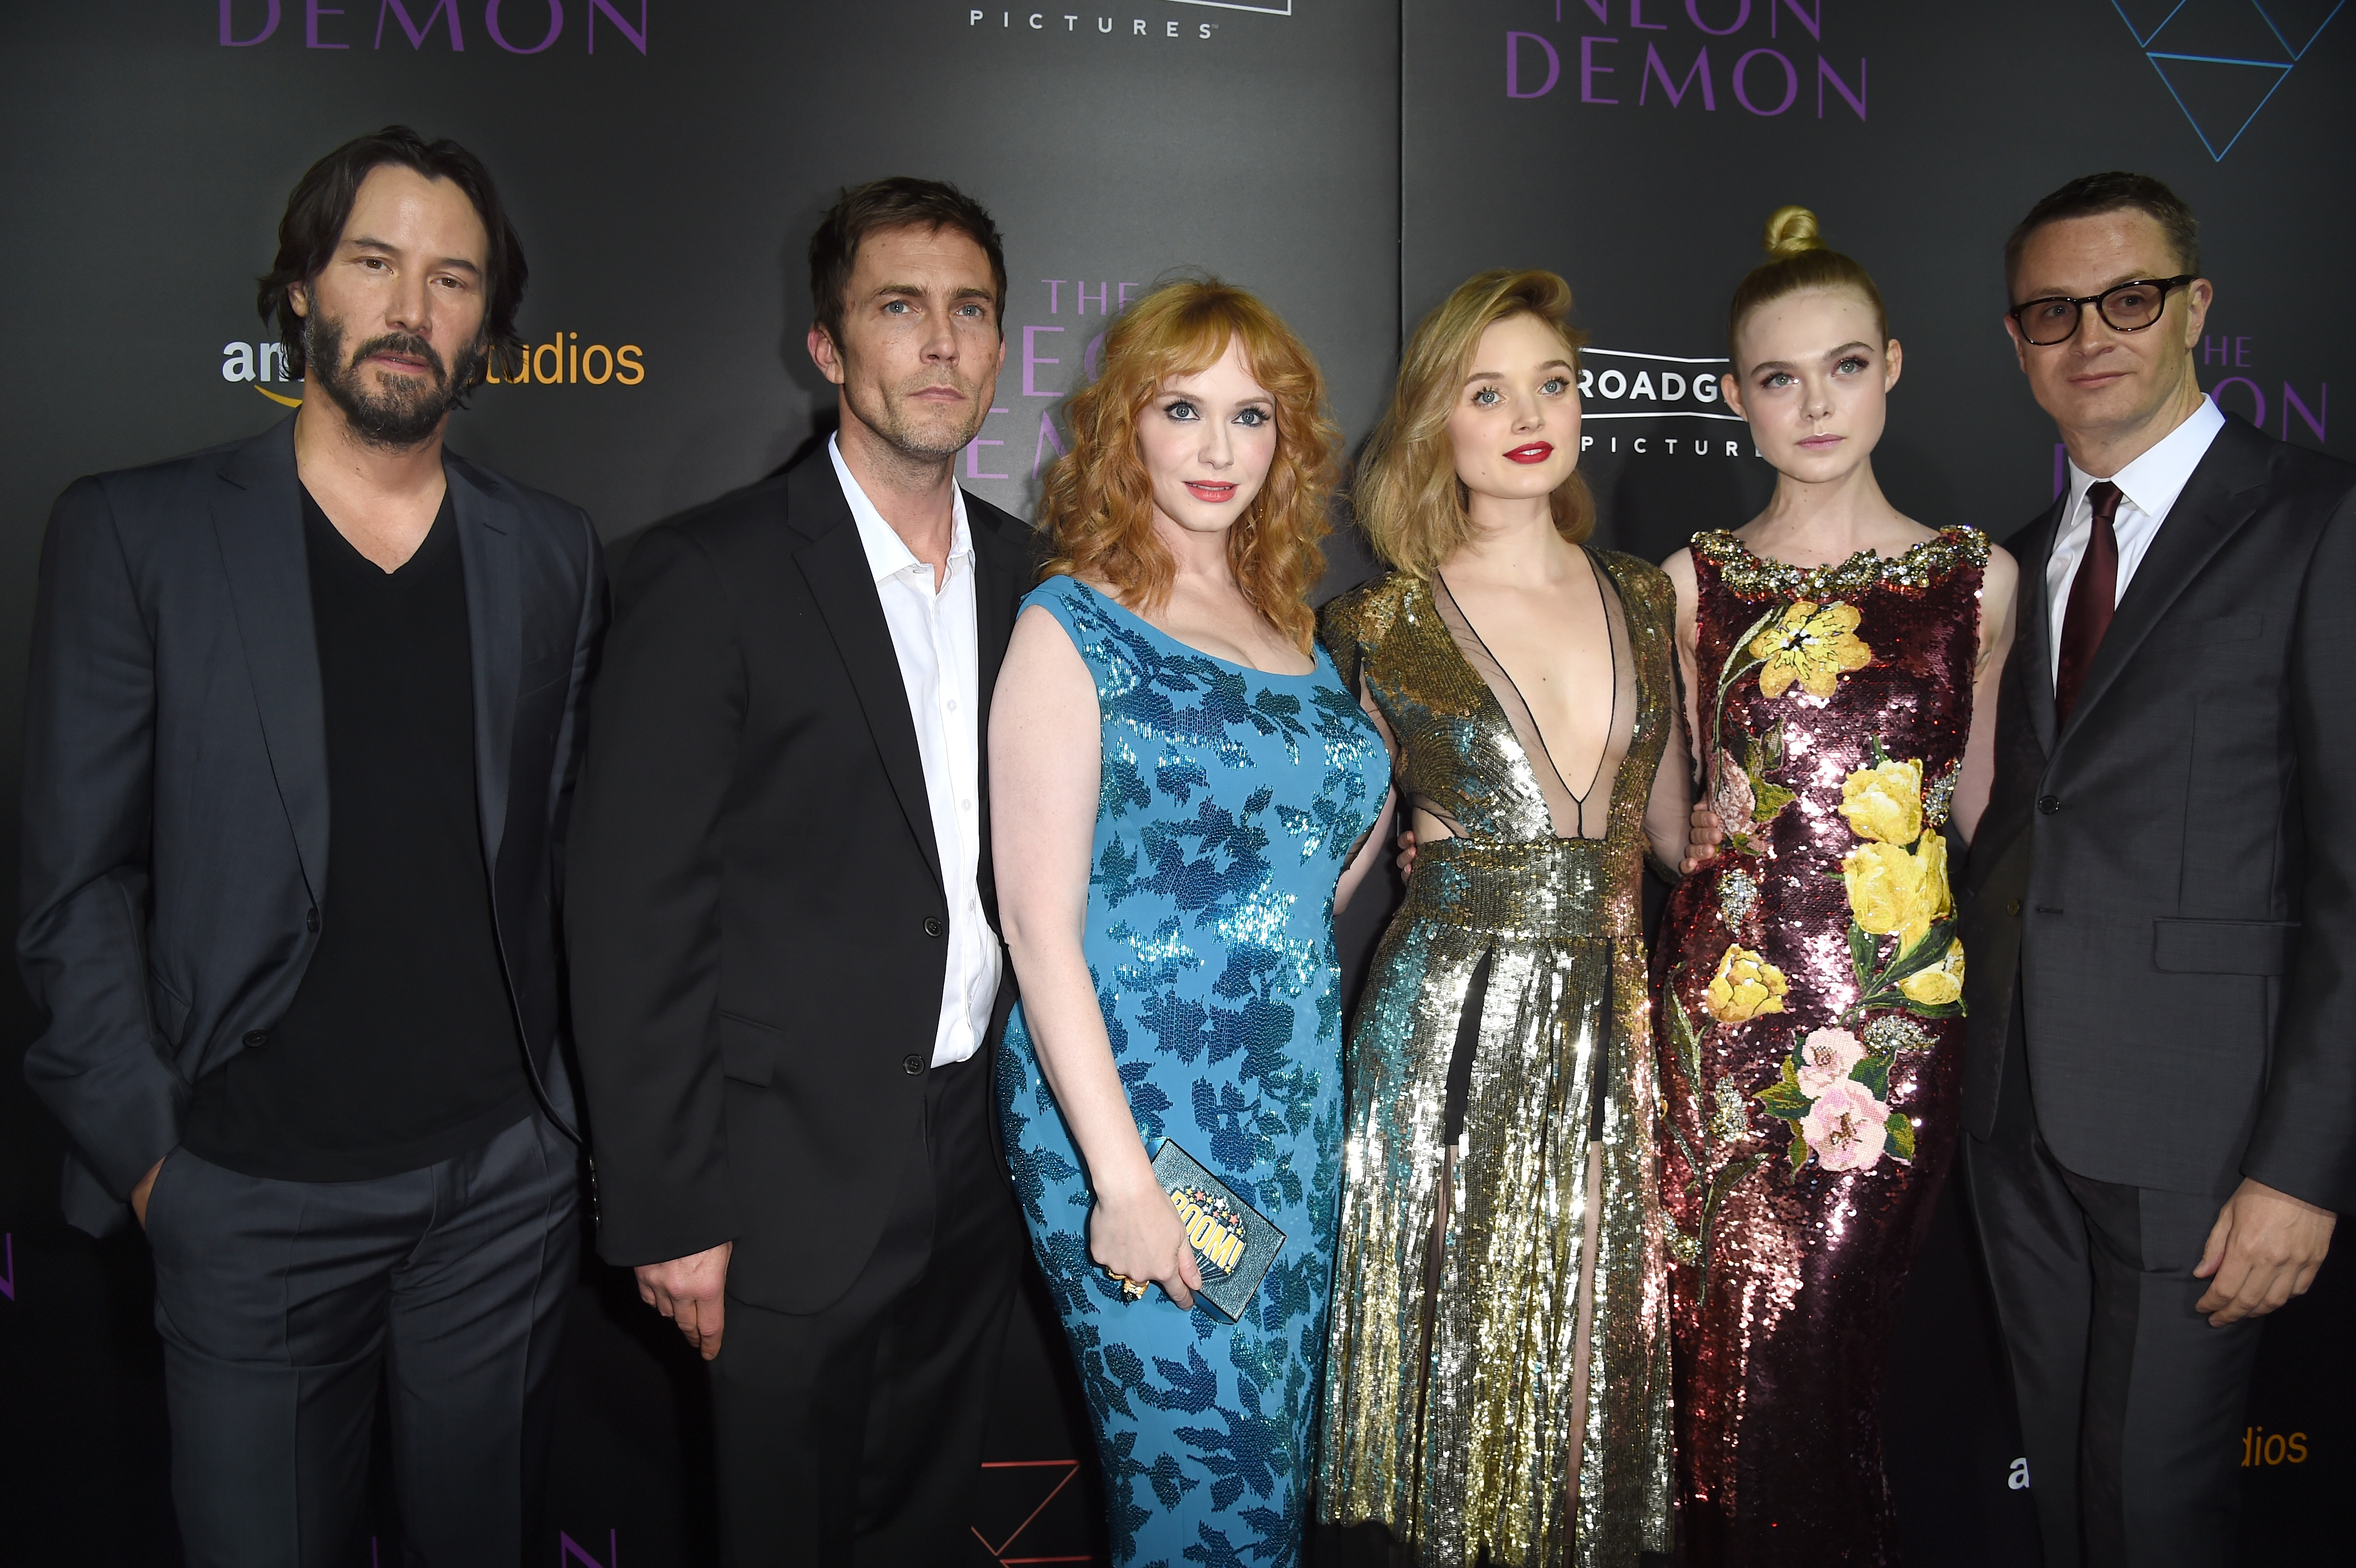 Keanu Reeves and the Neon Demon cast